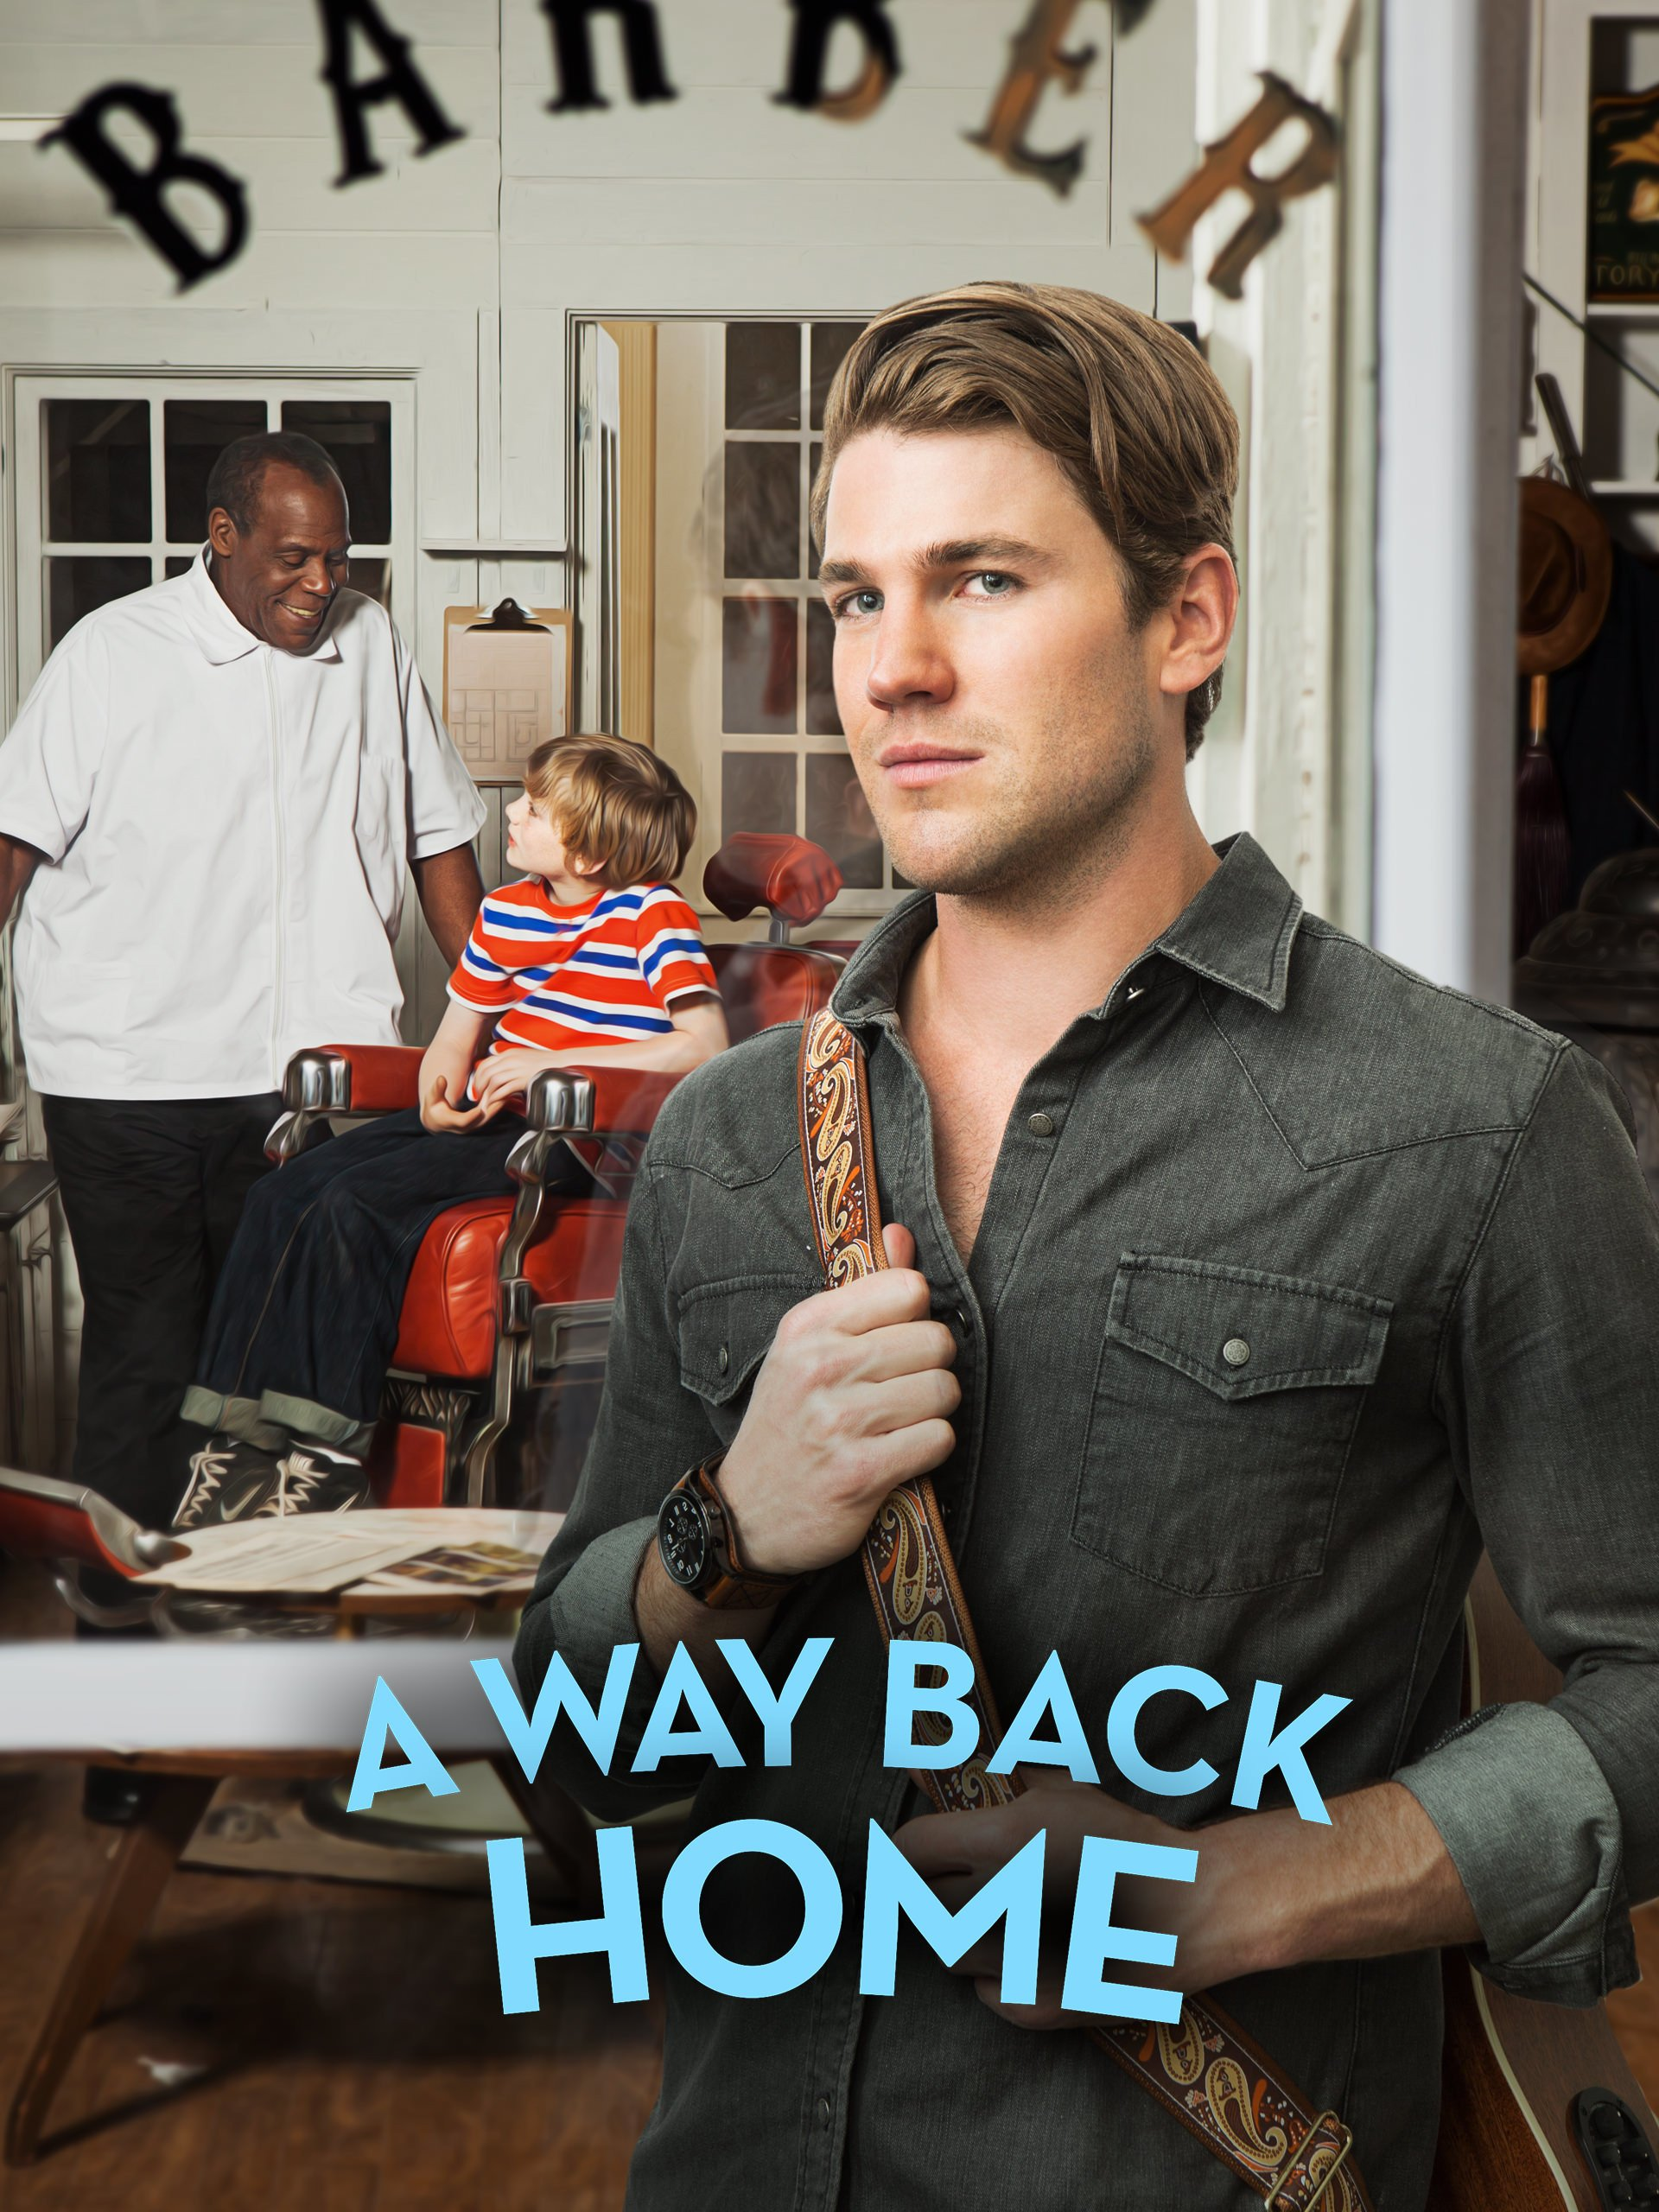 A Way Back Home (2013)